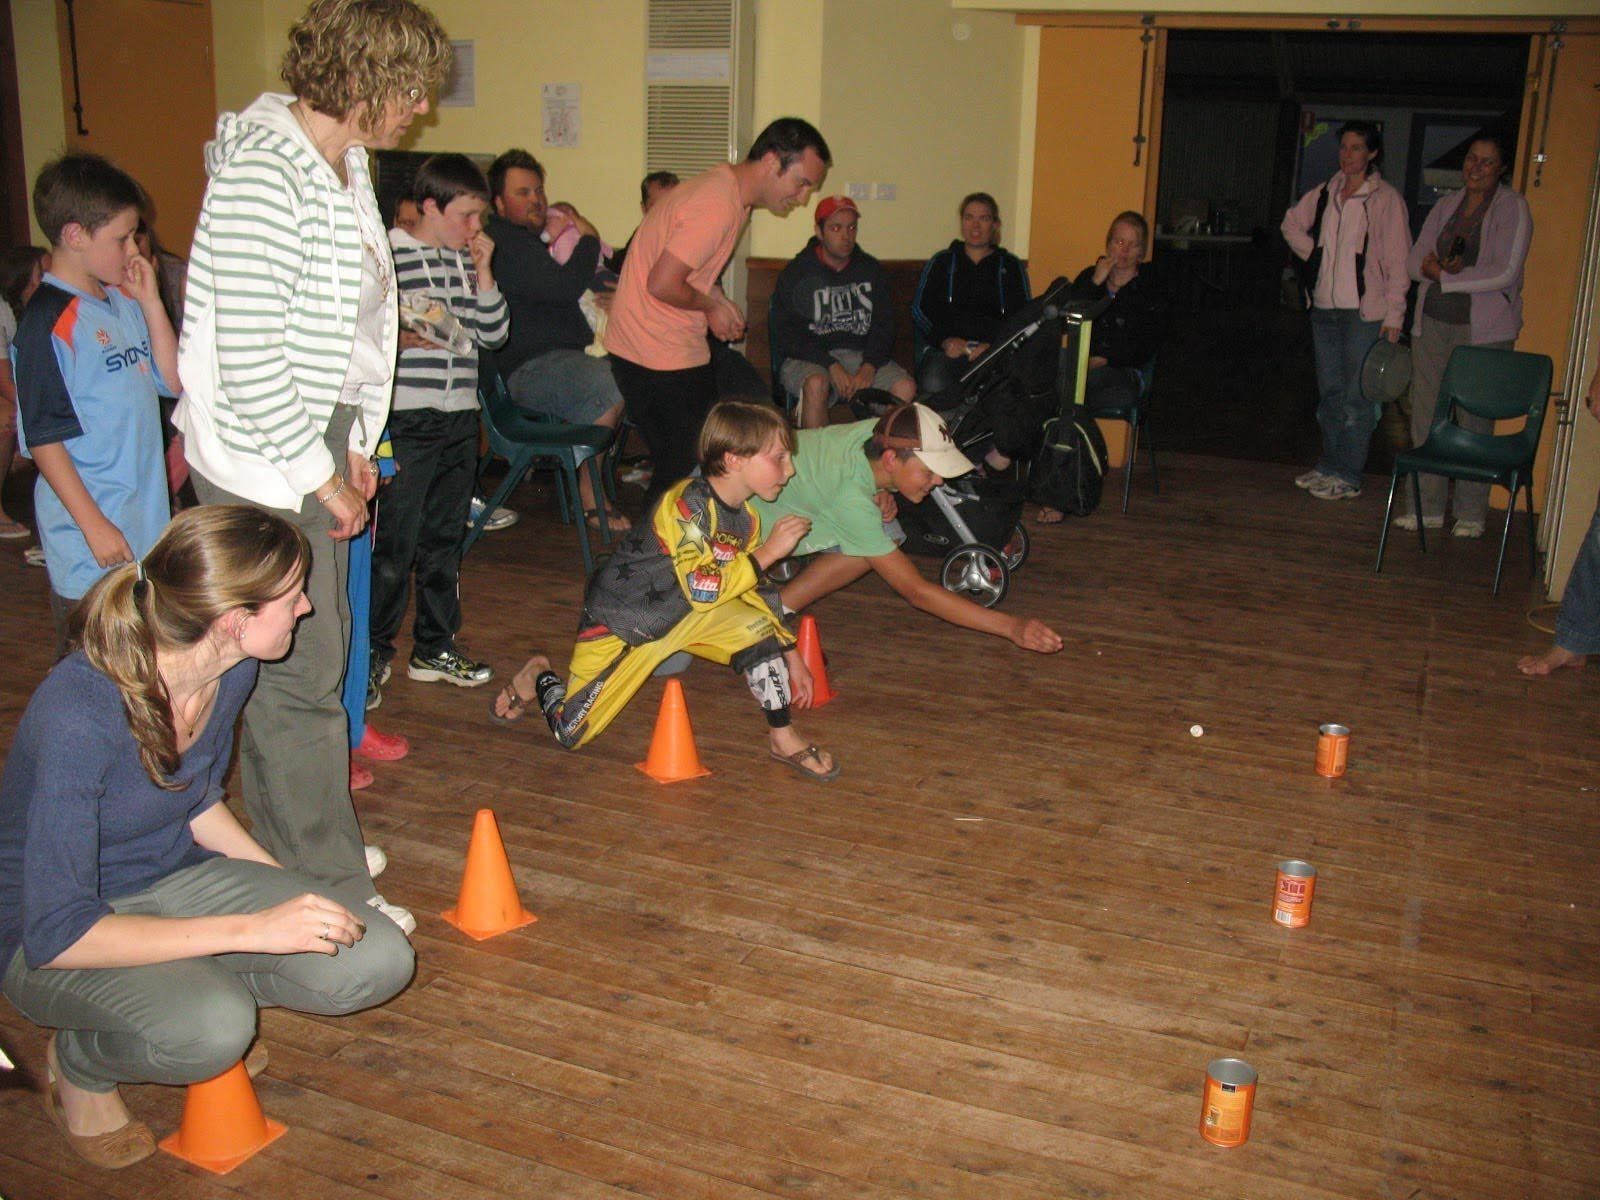 10 Fabulous Party Entertainment Ideas For Adults unusual party game ideas for adults reputable outdoor games together